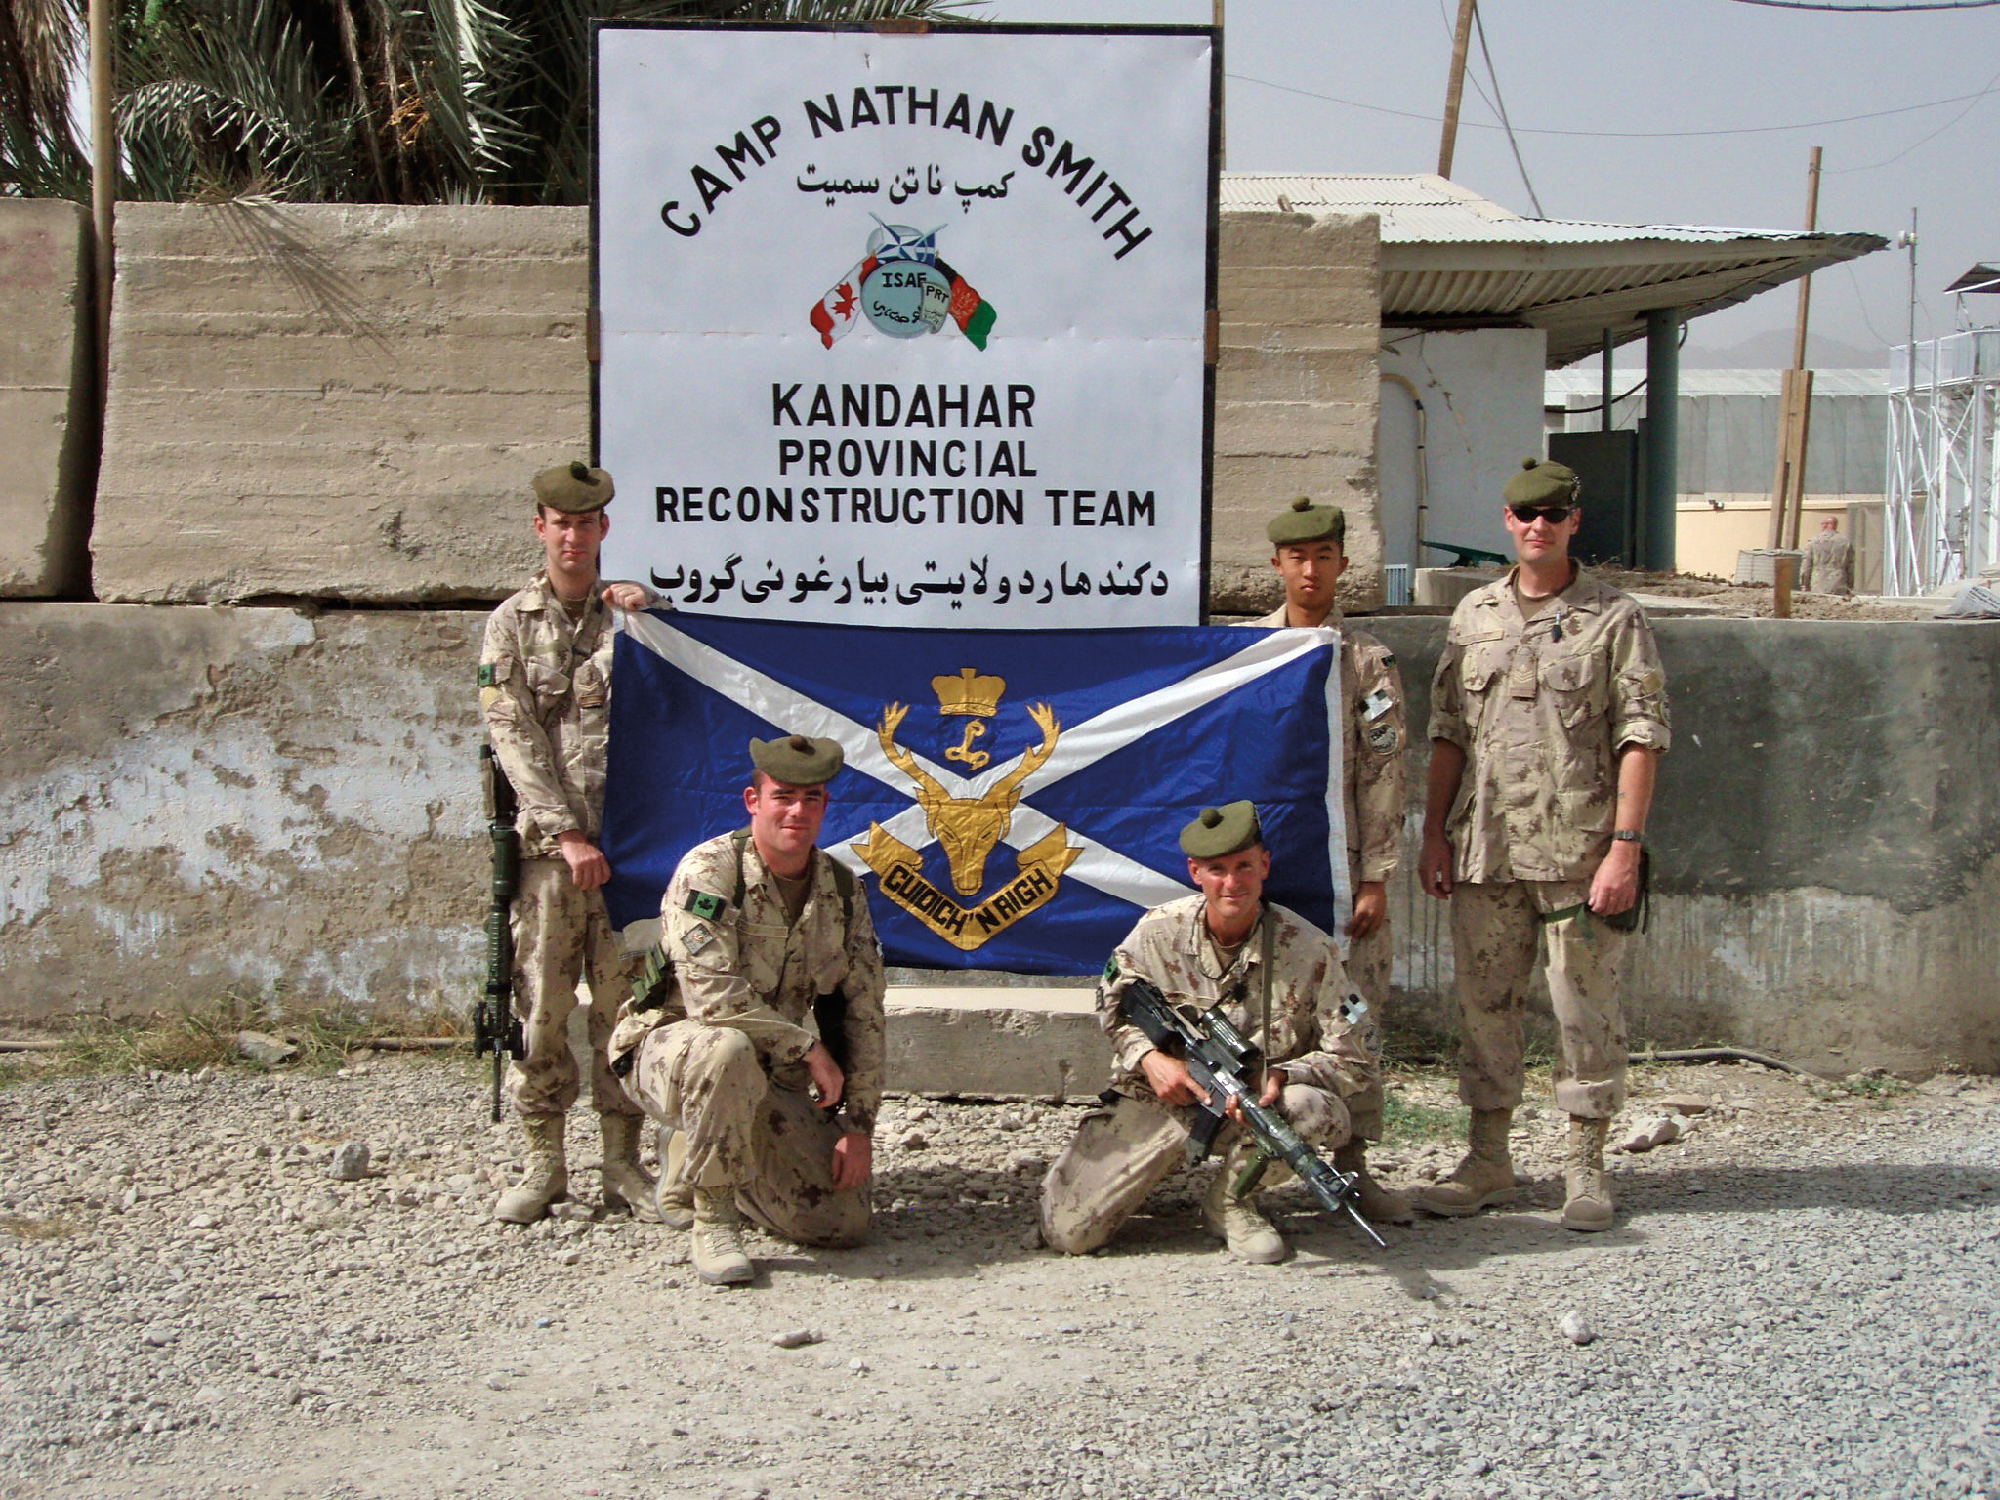 Corporal Josh Muir, Sergeants Stacey Shannon and Sean Laloge, and Corporals Jason Lacharite and Brian Lim near the front gate of Camp Nathan Smith.